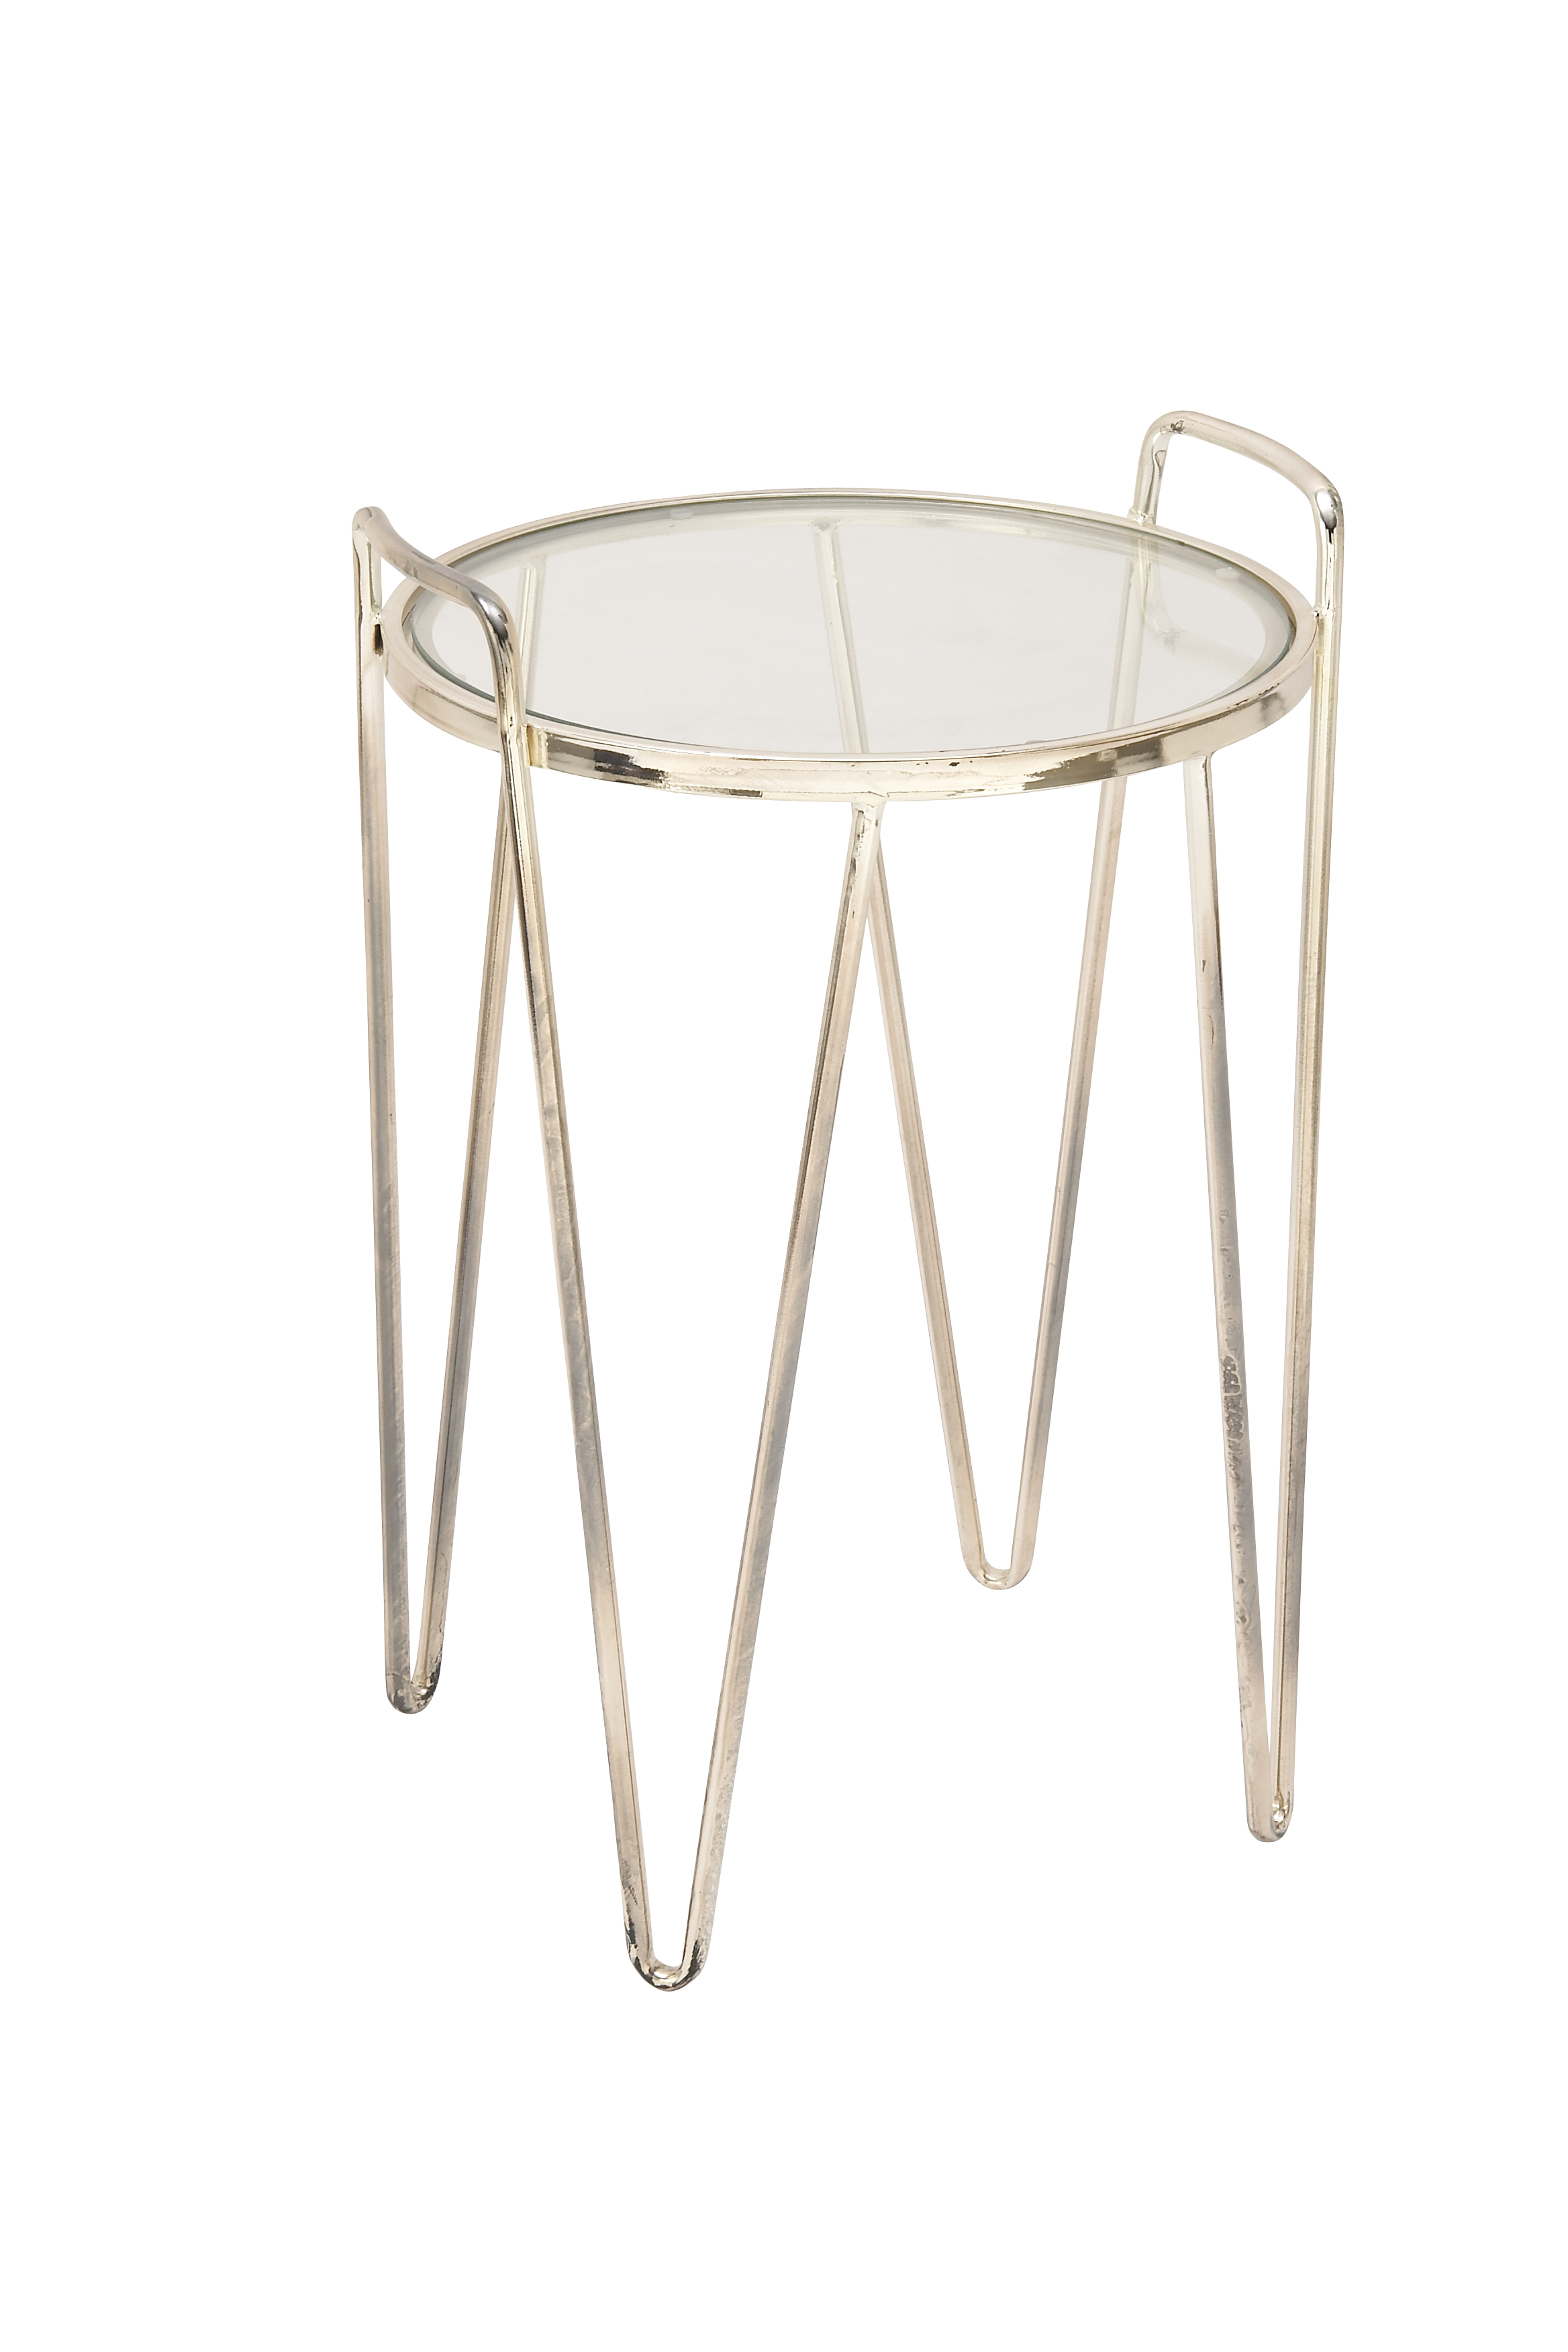 Decmode Modern Iron and Glass Accent Table, Silver by DecMode